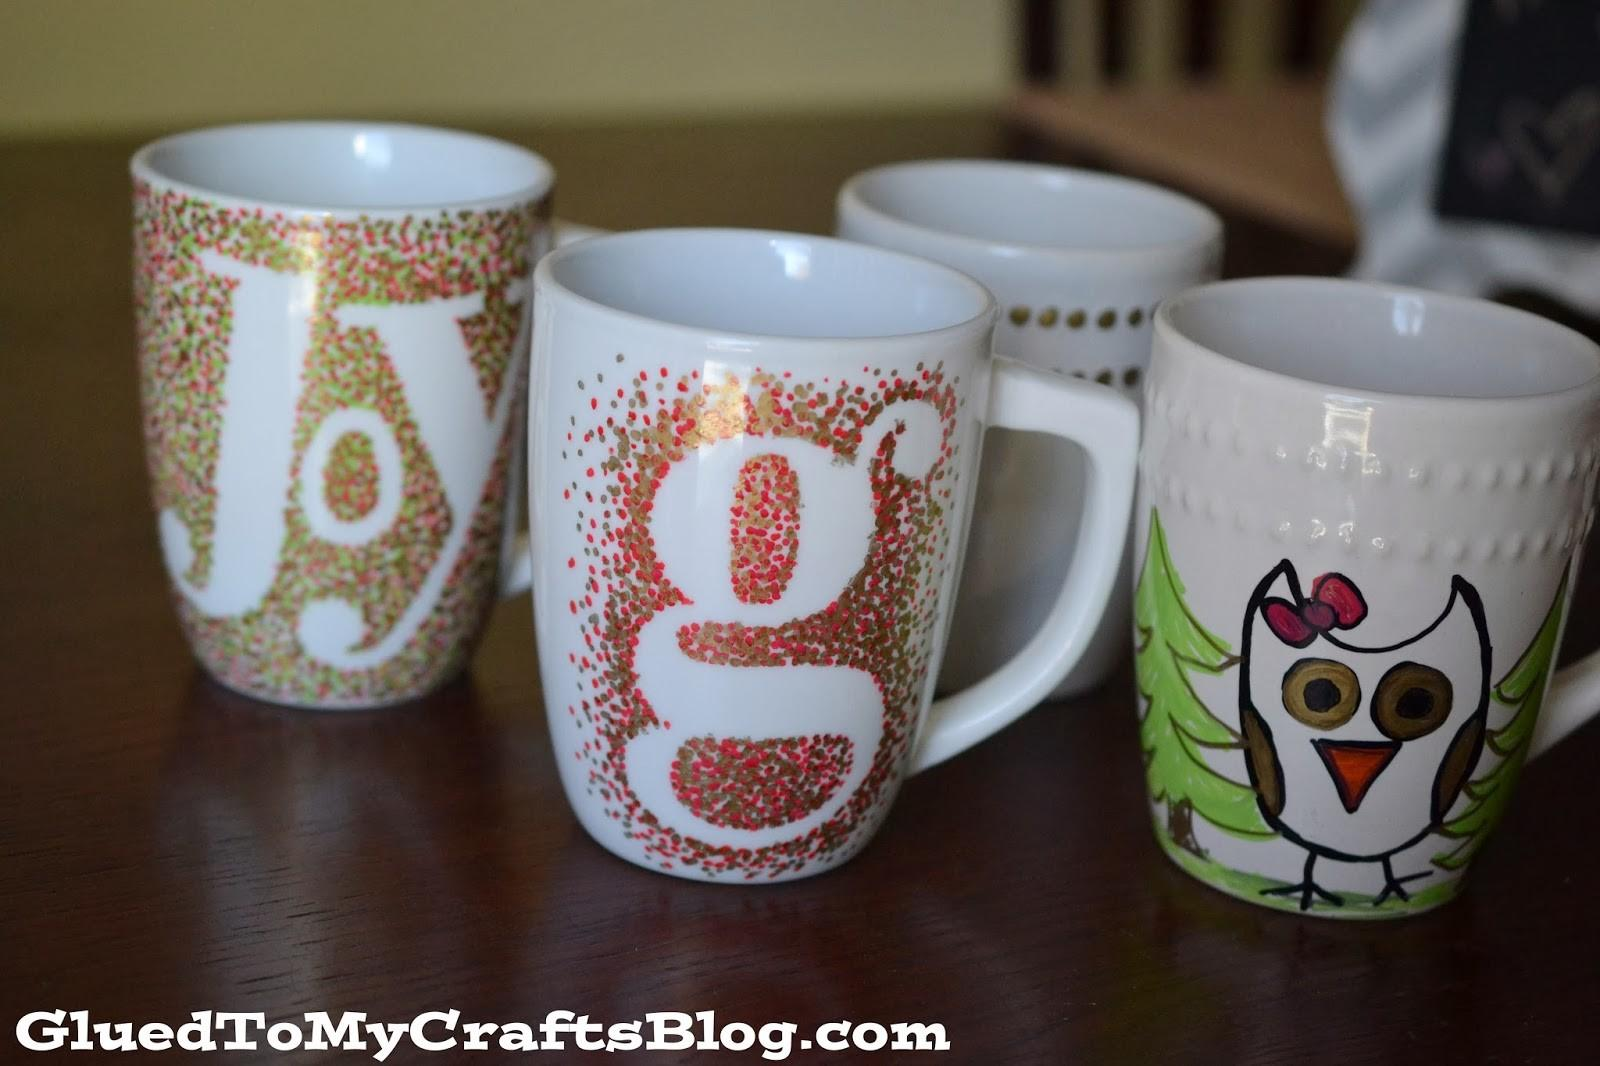 Diy Painted Mugs Won Wash Away Craft Glued